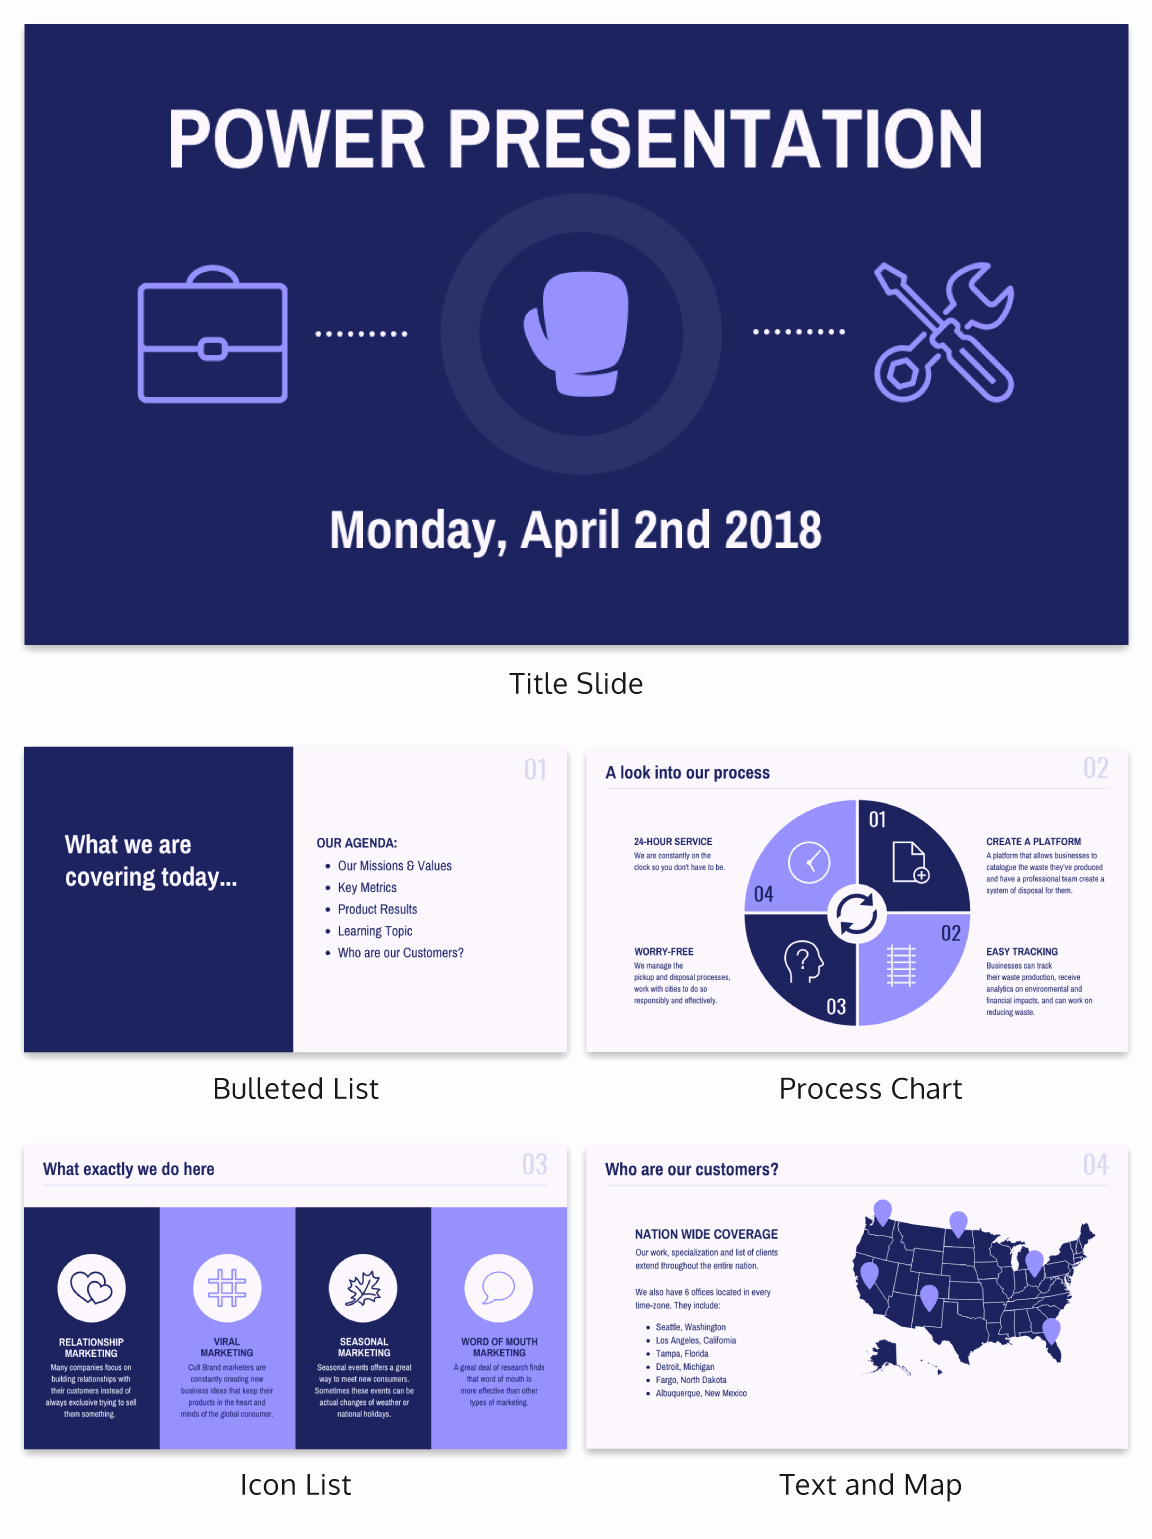 Ppt Templates for Business Presentation Lovely 20 Presentation Templates and Design Best Practices to